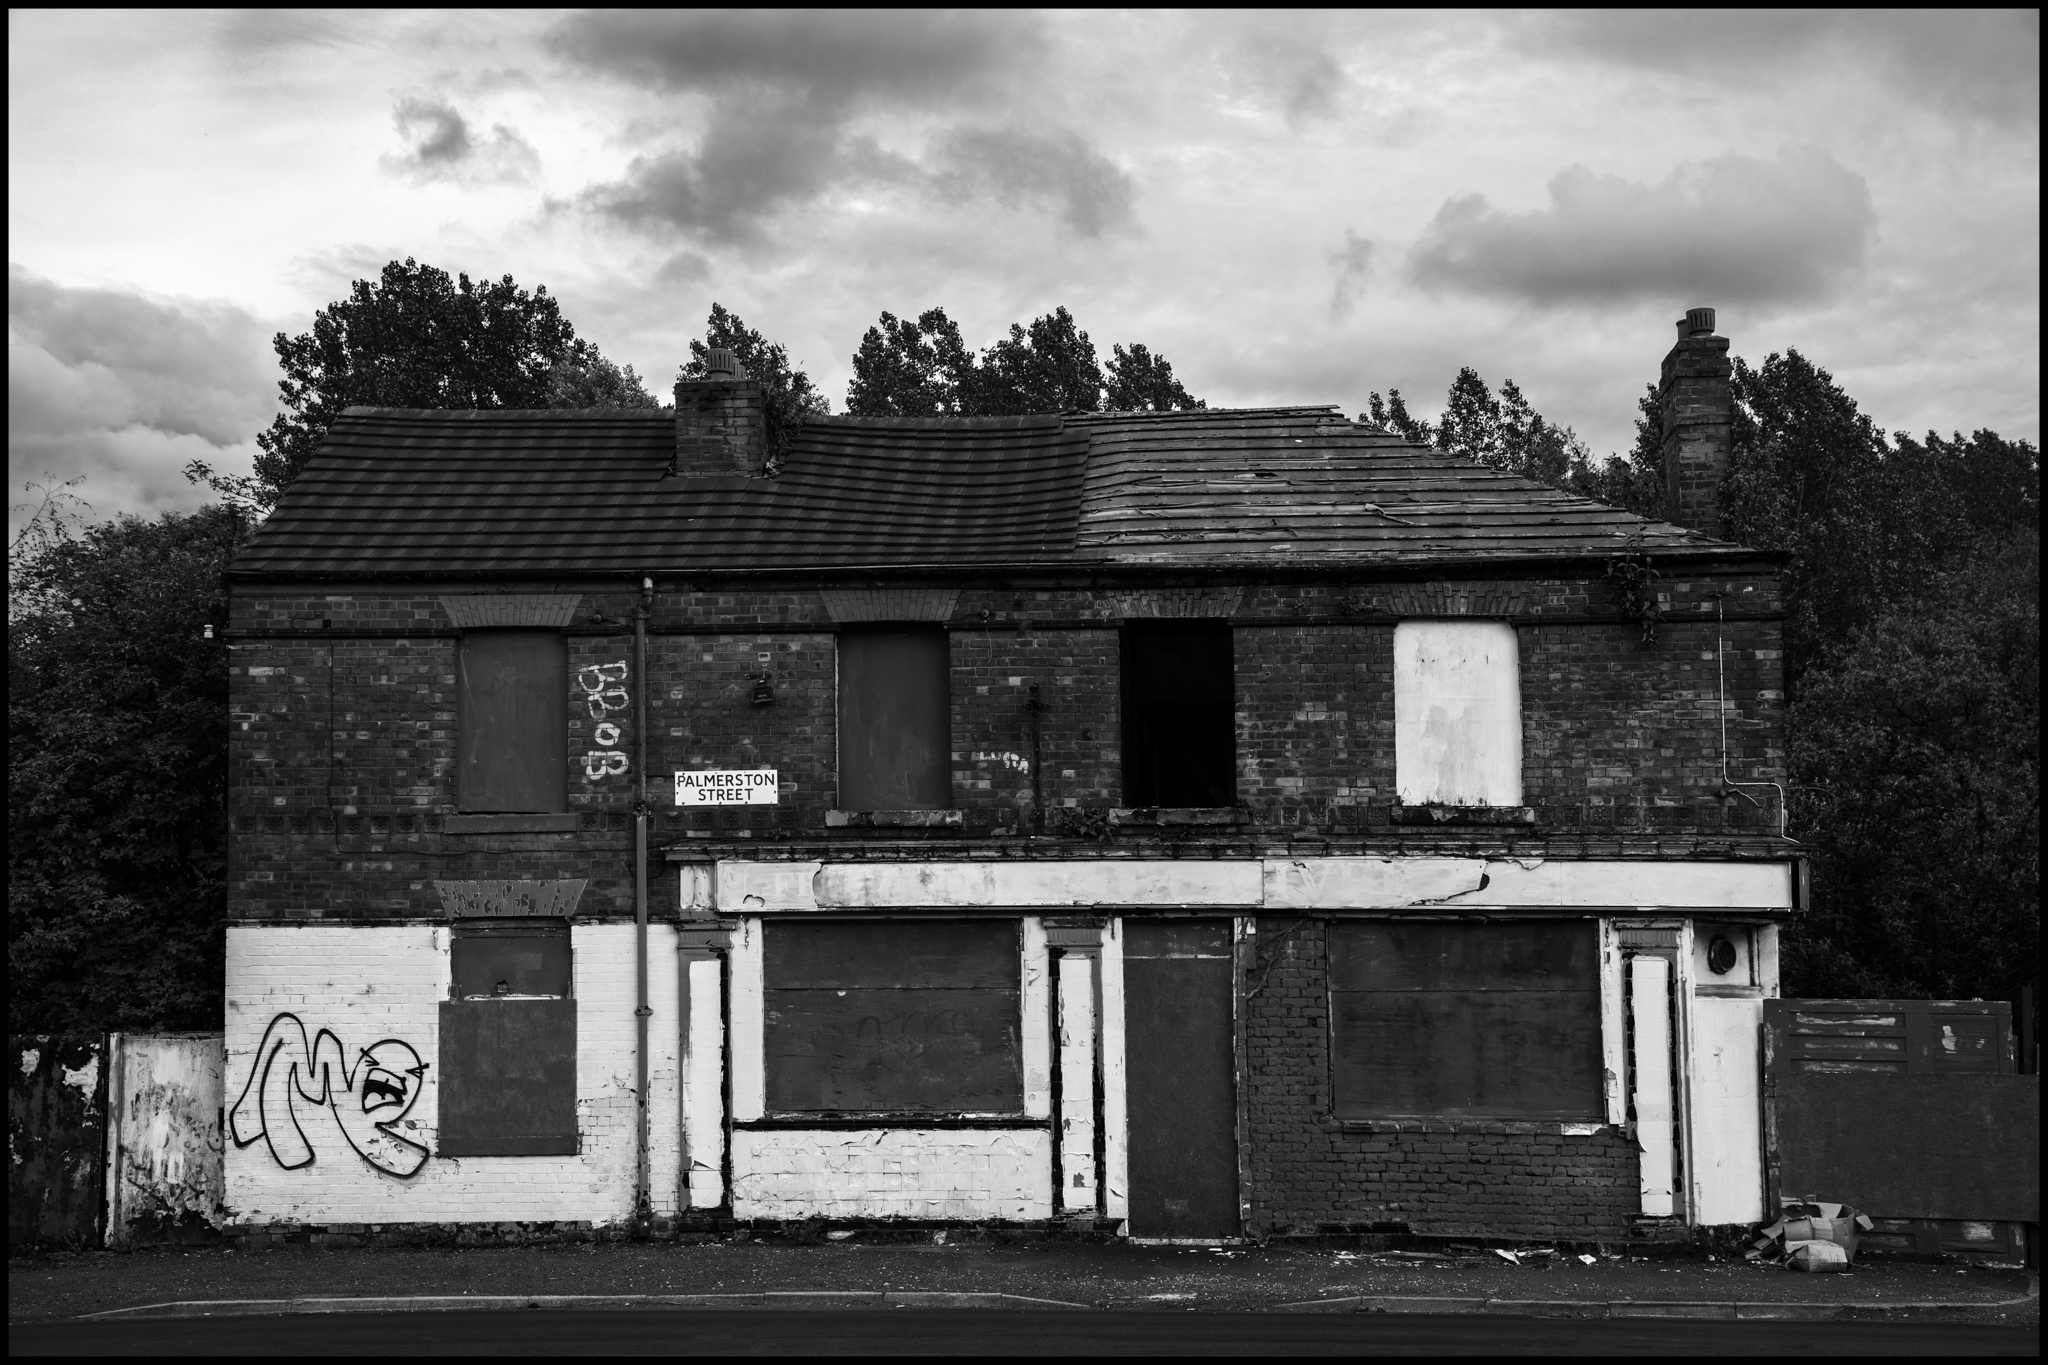 16 May 2019 - House on Palmerston street, Manchester UK